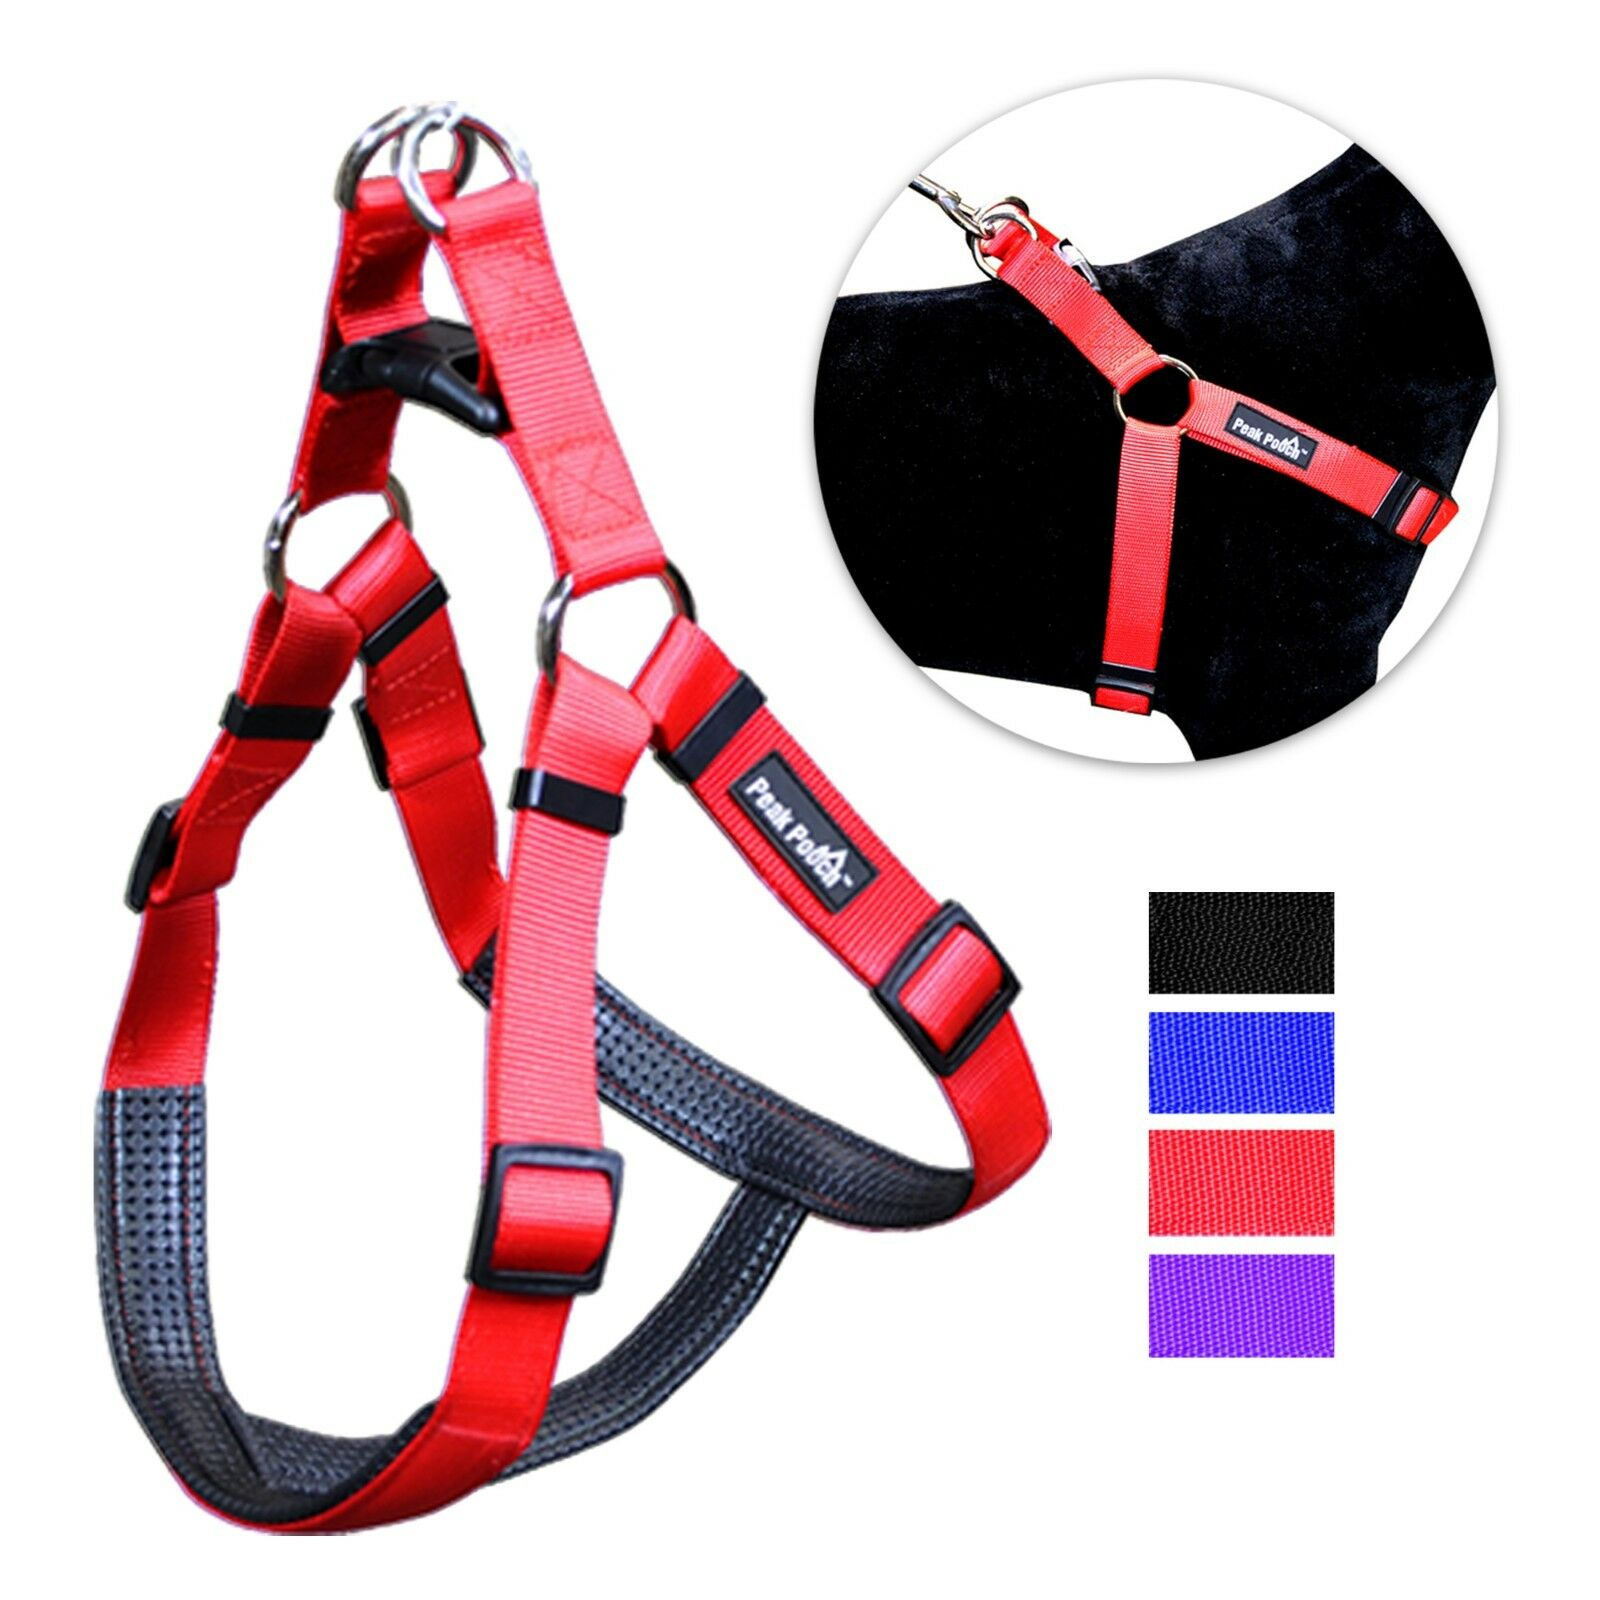 No Pull Padded Comfort Nylon Dog Walking Harness for Small M